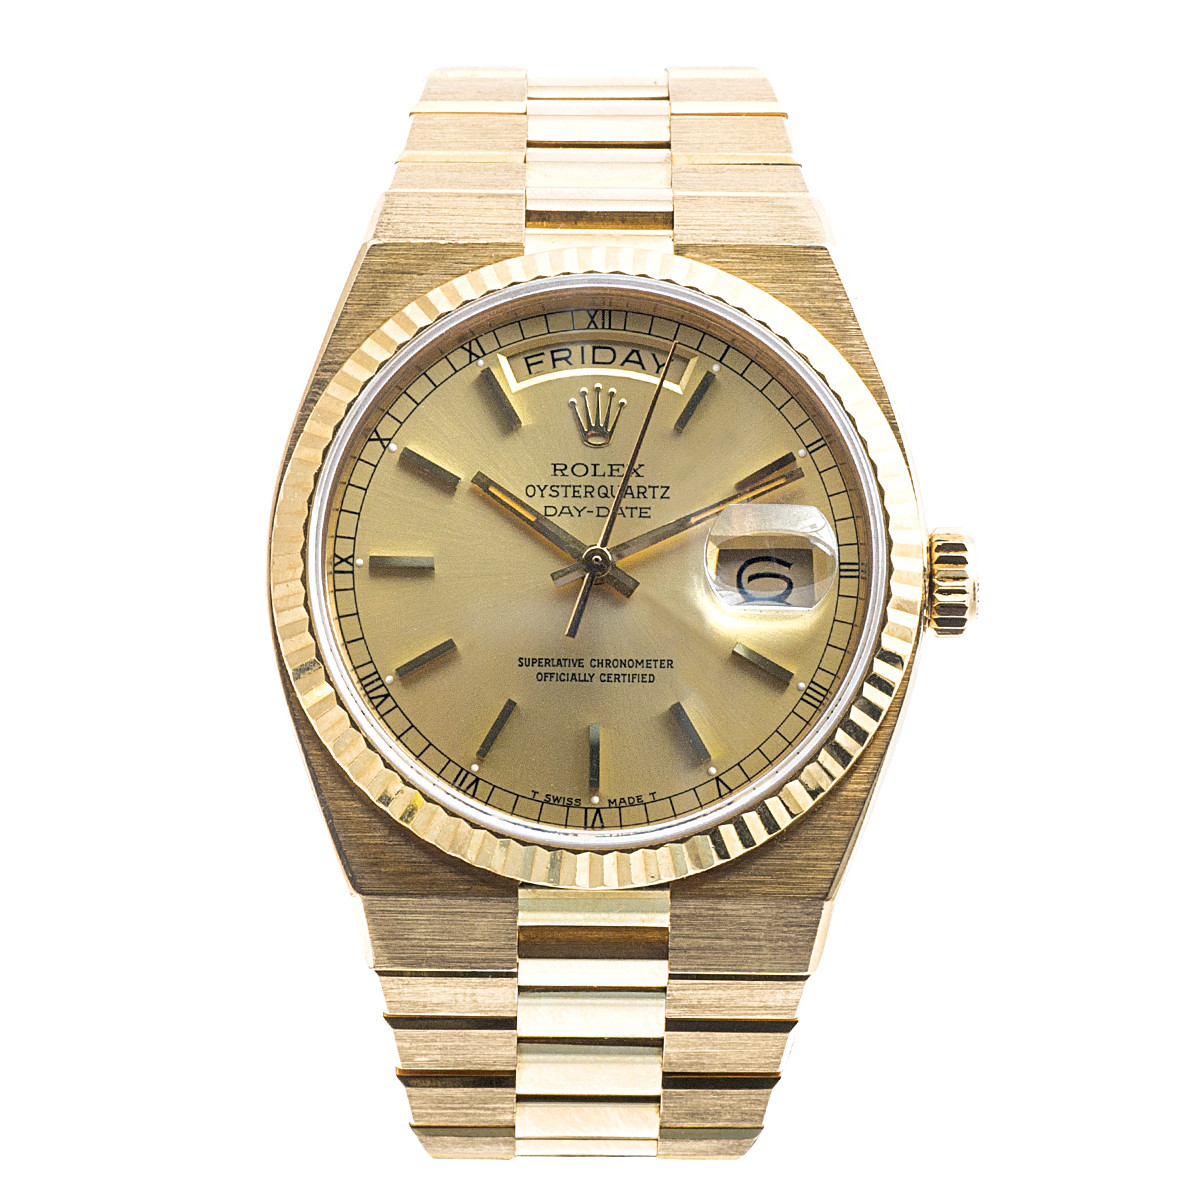 Preowned Rolex OysterQuartz Day-Date President